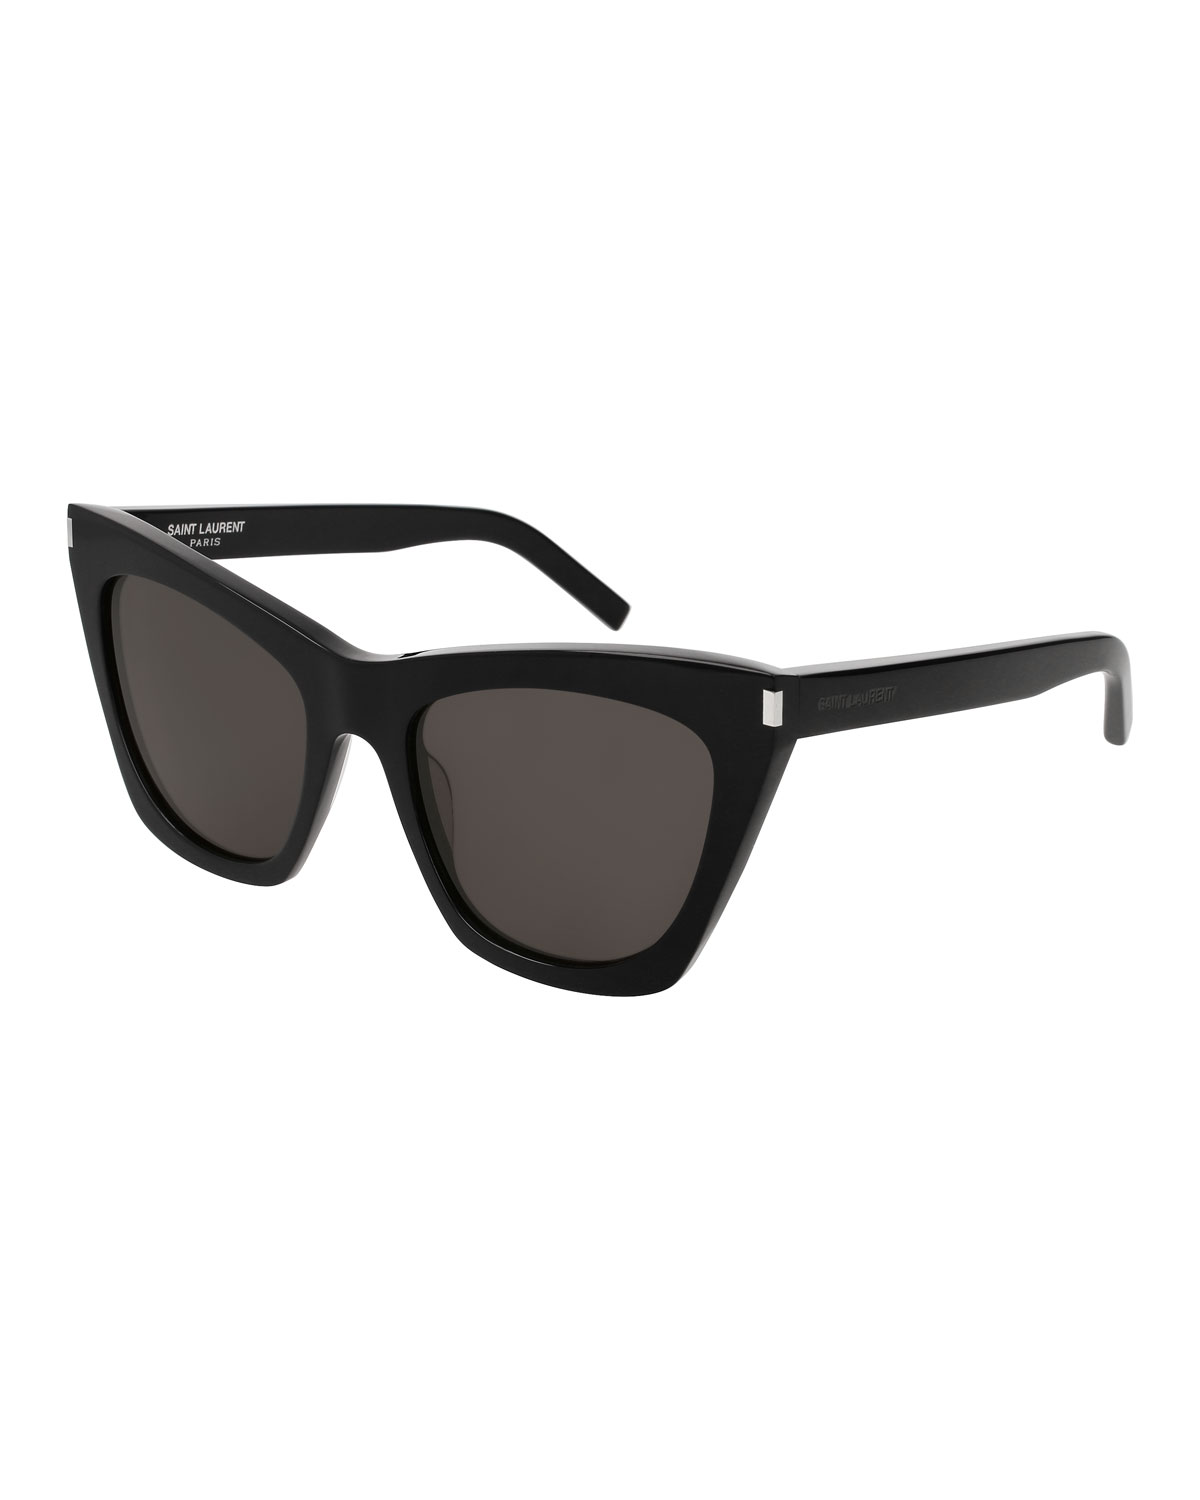 28d7314d971 Saint Laurent Kate Cat-Eye Acetate Sunglasses